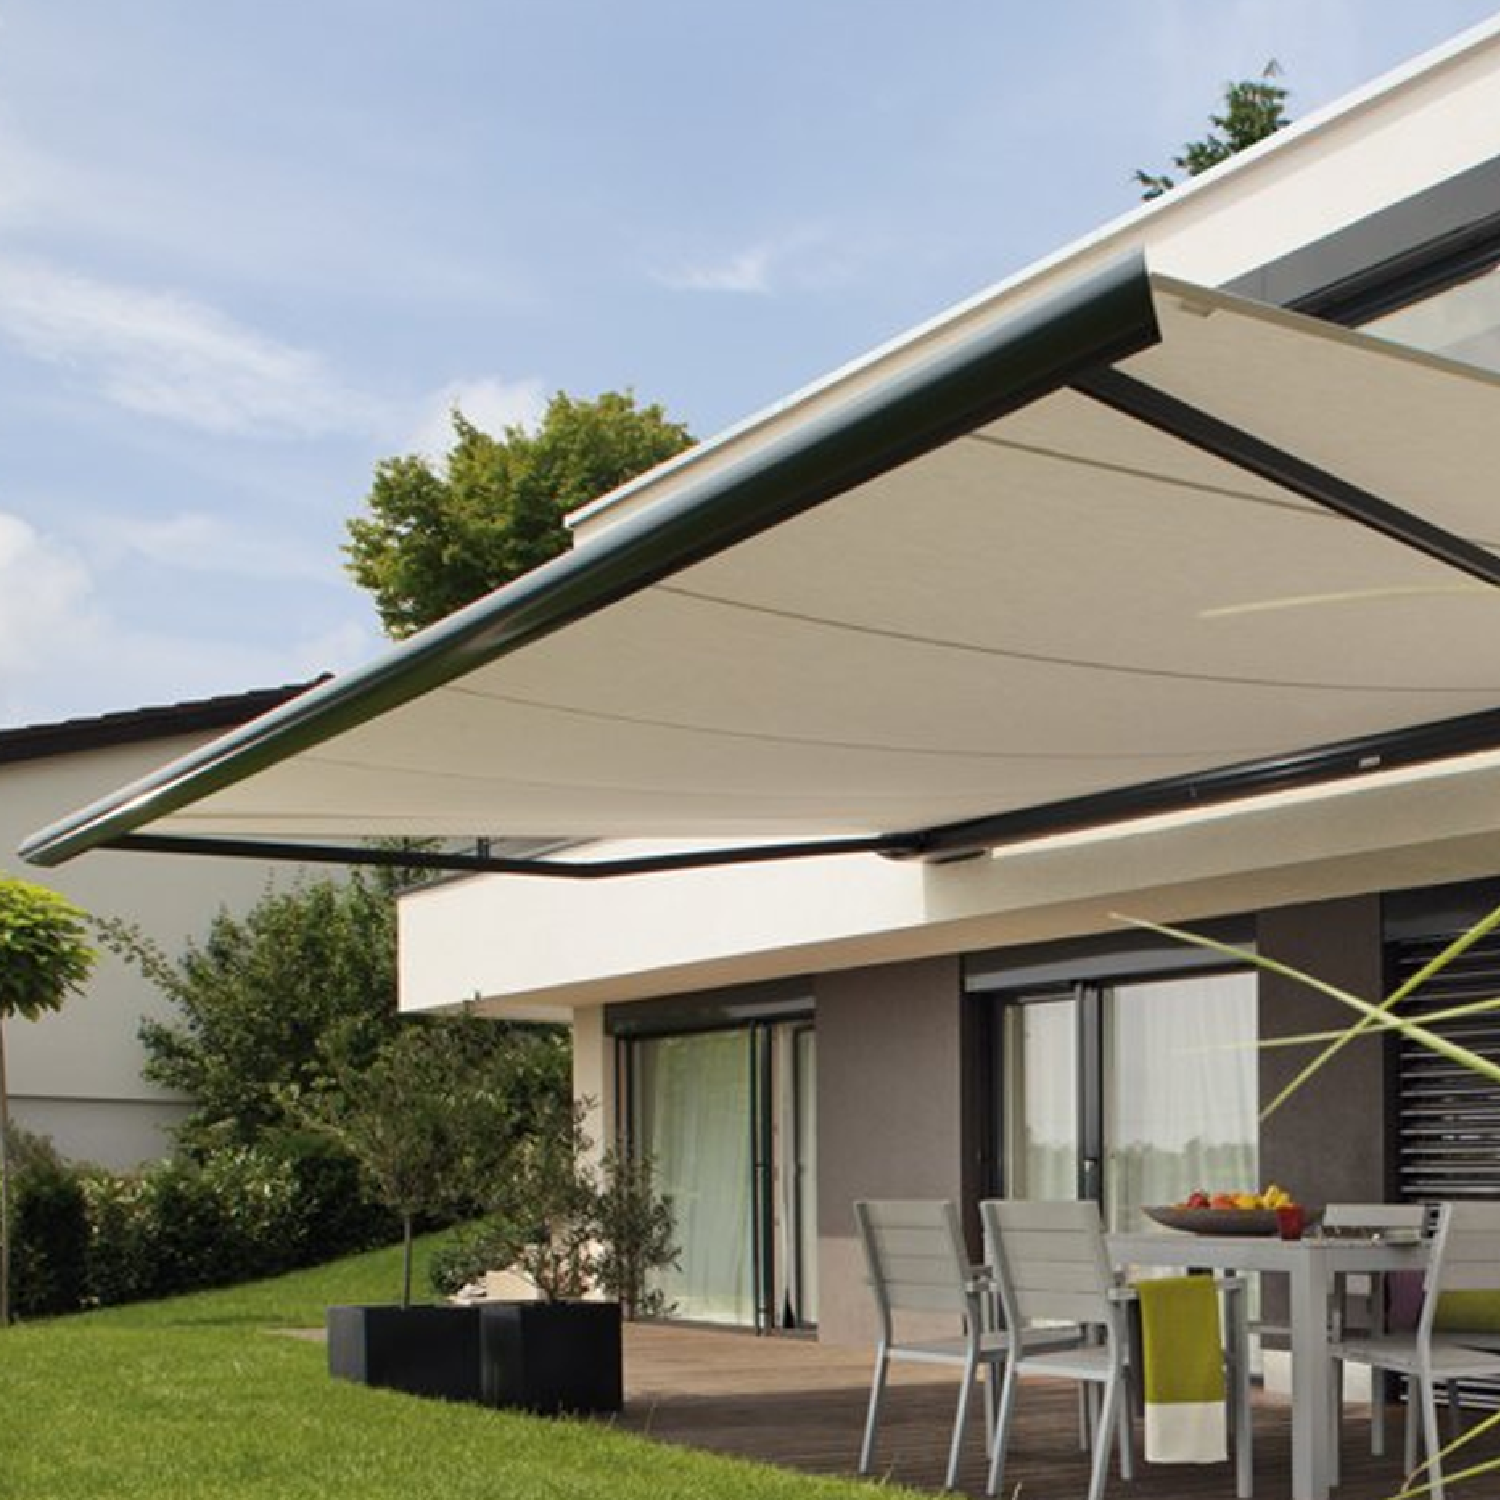 Weinor - We are an official weinor awnings retailer,  Riviera Blinds are long-term weinor dealer in Lytham St Annes Area.For many years now, weinor has consistently driven innovation in awning design and technology, and with its new generation of awnings, weinor is once again raising the bar. At the core of these developments are three aspects; design, convenience and technology. Design is a question of style and form, and whether classic or avant-garde, weinor awnings stand out for their high-quality materials with aesthetic look and shape. The result is ultramodern technology in a contemporary design